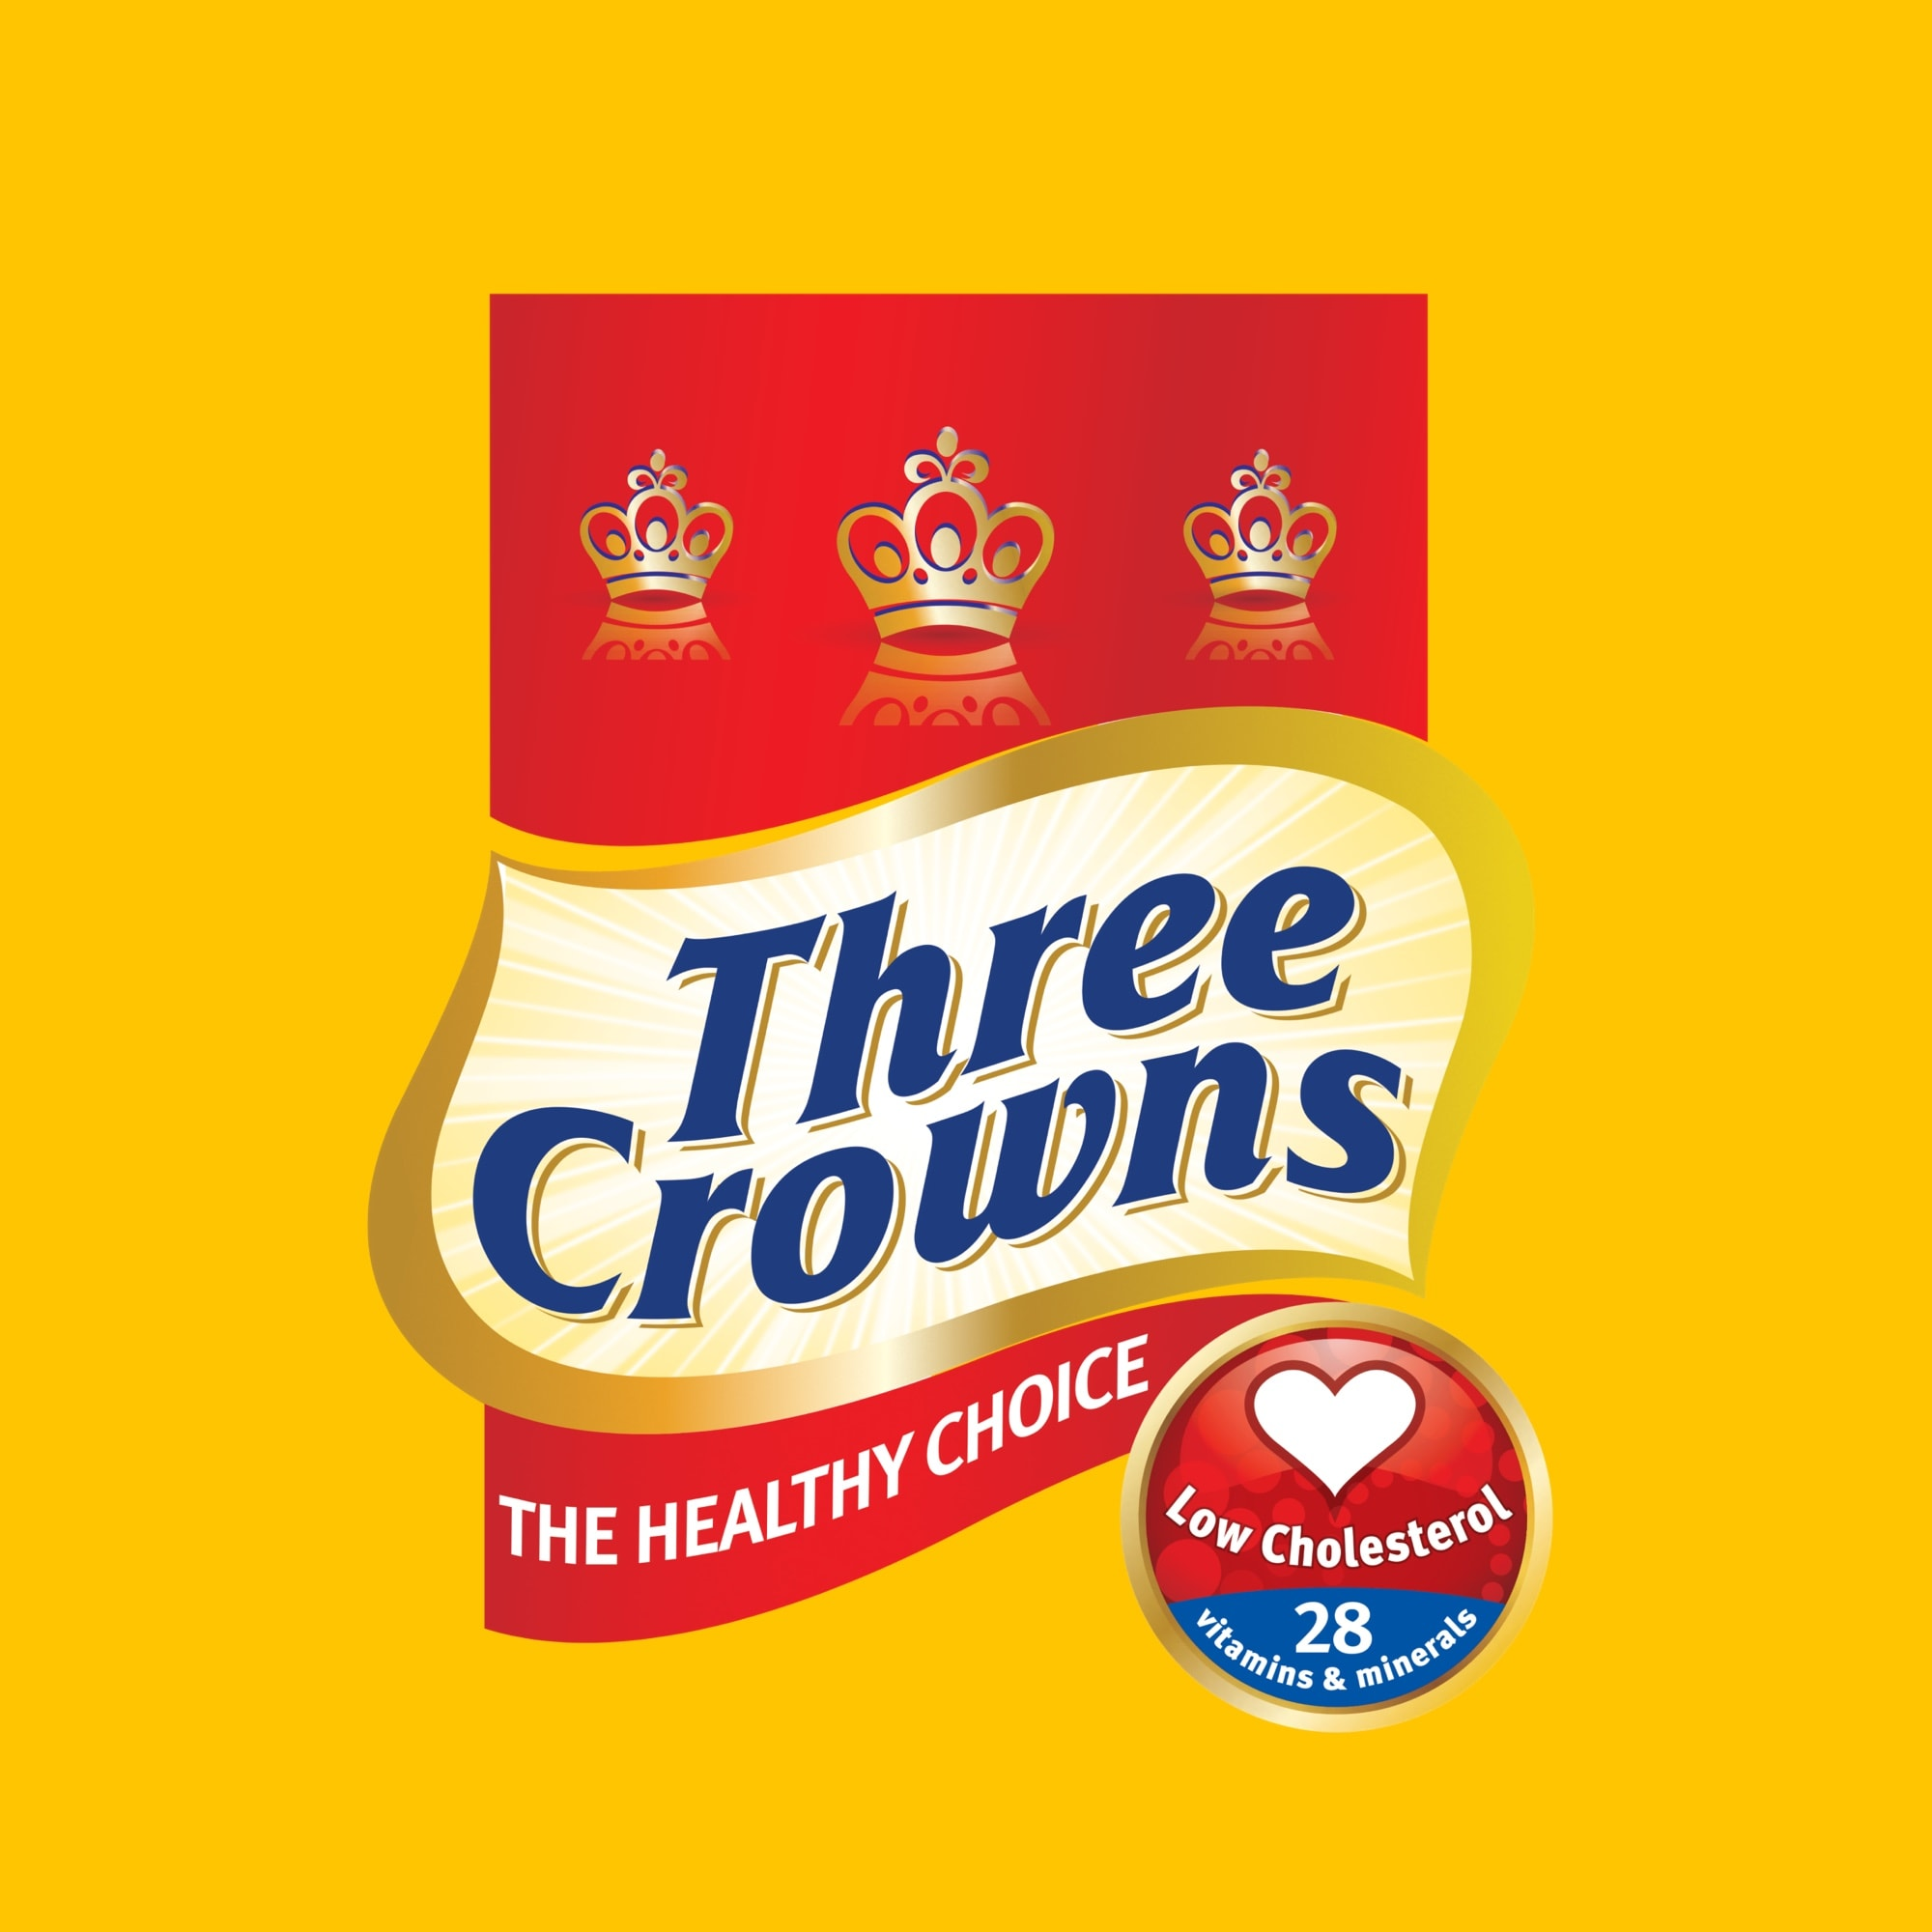 Logo of Three Crowns a FrieslandCamina brand